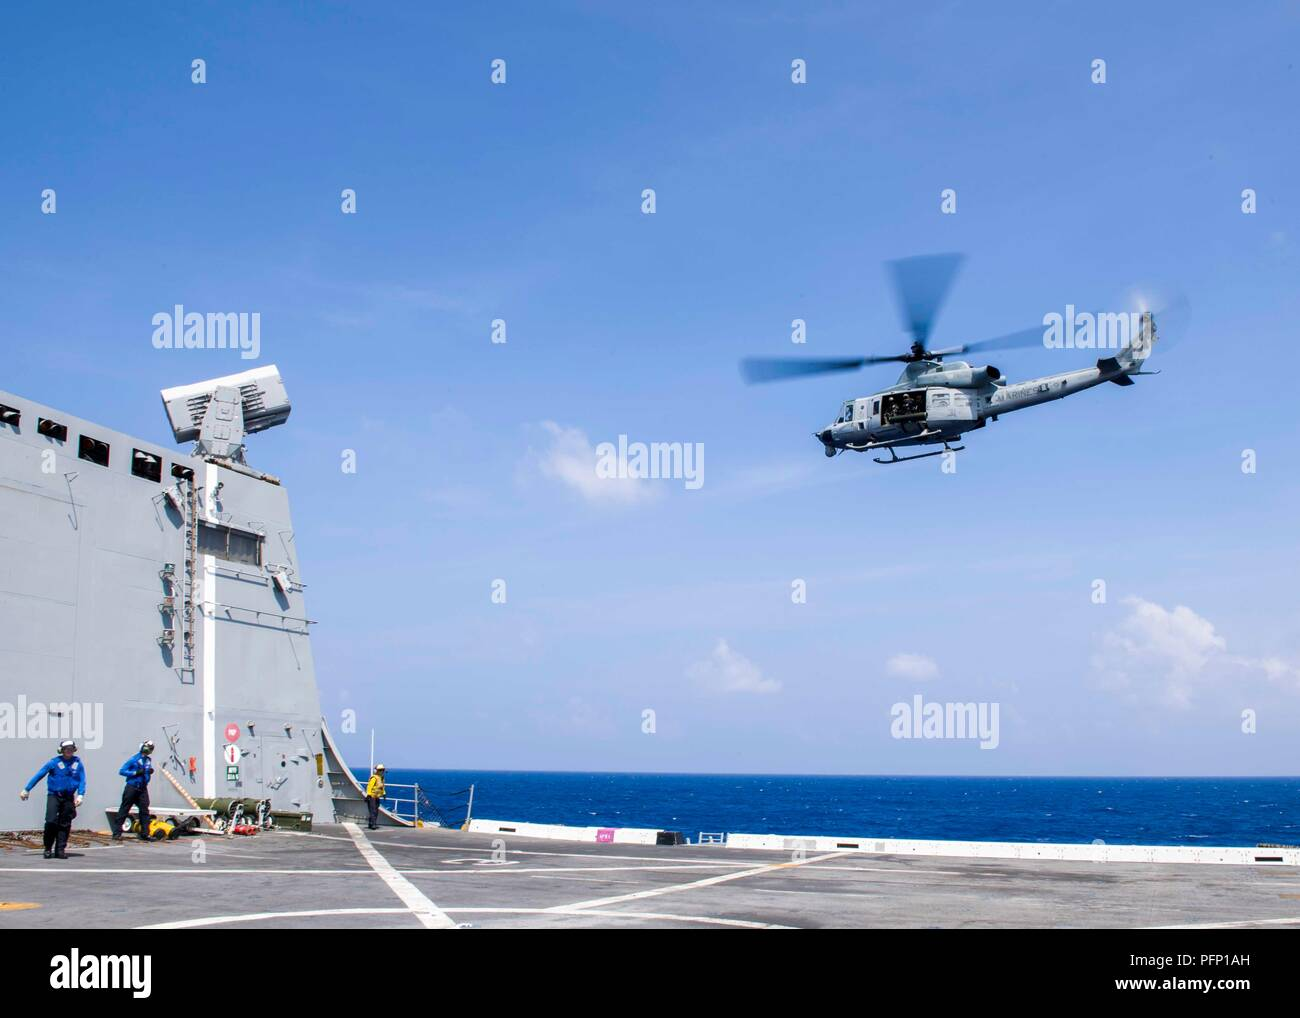 180808-N-PH222-0514 PACIFIC OCEAN (August 8, 2018) A UH-1Y Venom helicopter, assigned to the Marine Light Attack Helicopter detachment of Marine Medium Tiltrotor Squadron (VMM) 166, conducts flight operations from the flight deck of San Antonio-class amphibious transport dock USS Anchorage (LPD 23) during a regularly scheduled deployment of the Essex Amphibious Ready Group (ARG) and 13th Marine Expeditionary Unit (MEU). The Essex ARG/MEU team is a strong and flexible force equipped and scalable to respond to any crisis ranging from humanitarian assistance and disaster relief to contingency ope - Stock Image